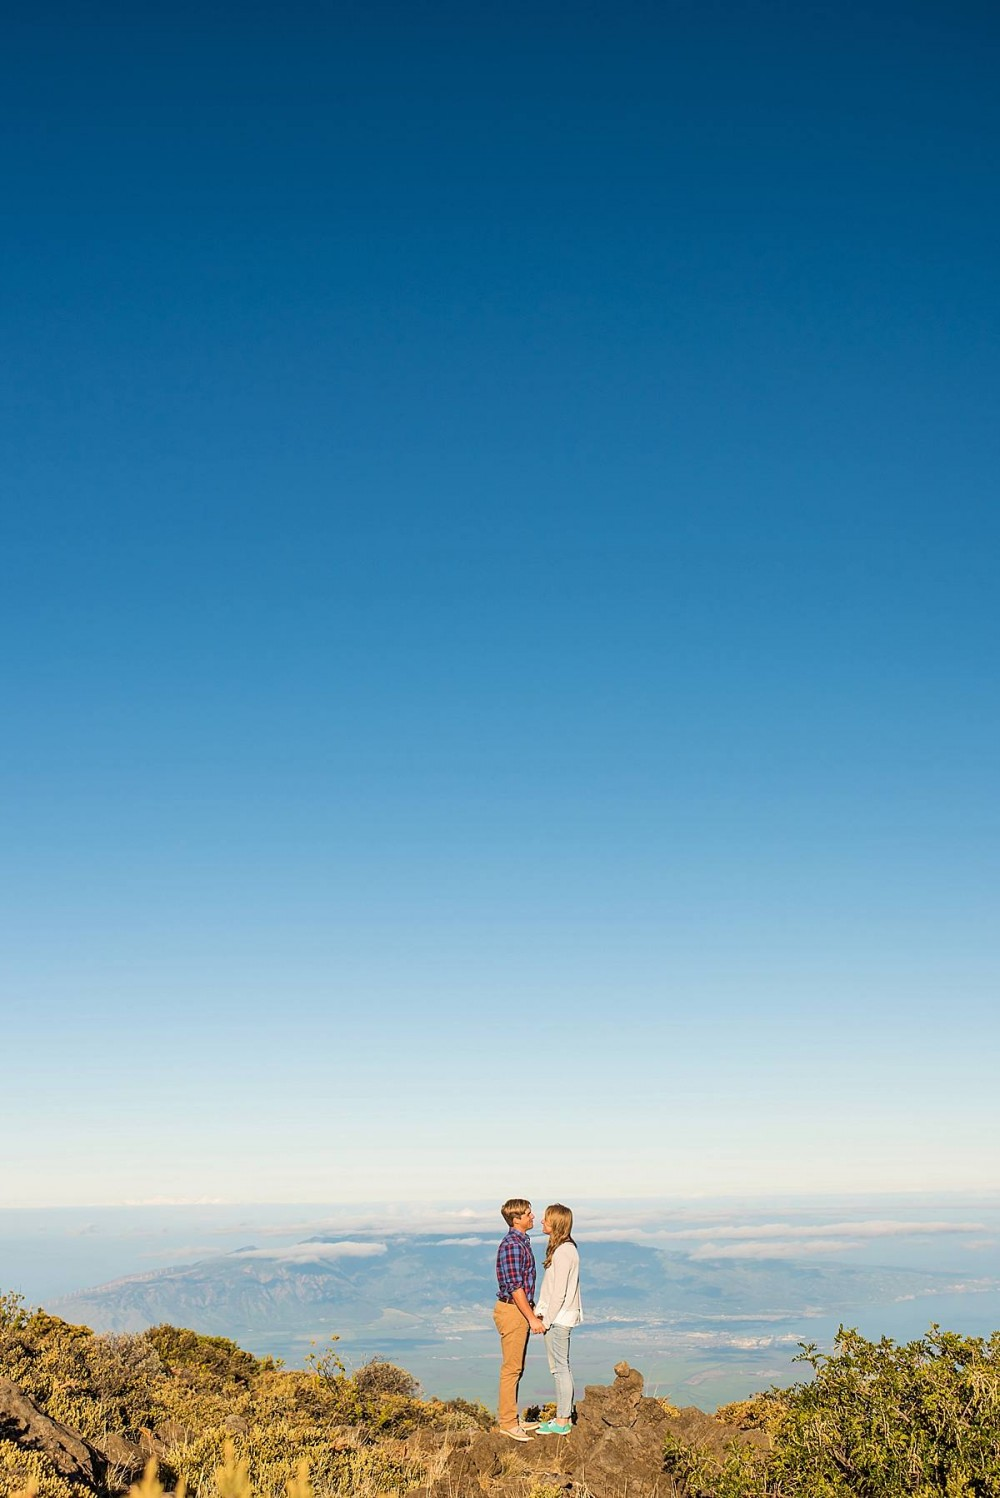 Image 1 of Annie and Justin's Marriage Proposal in Maui